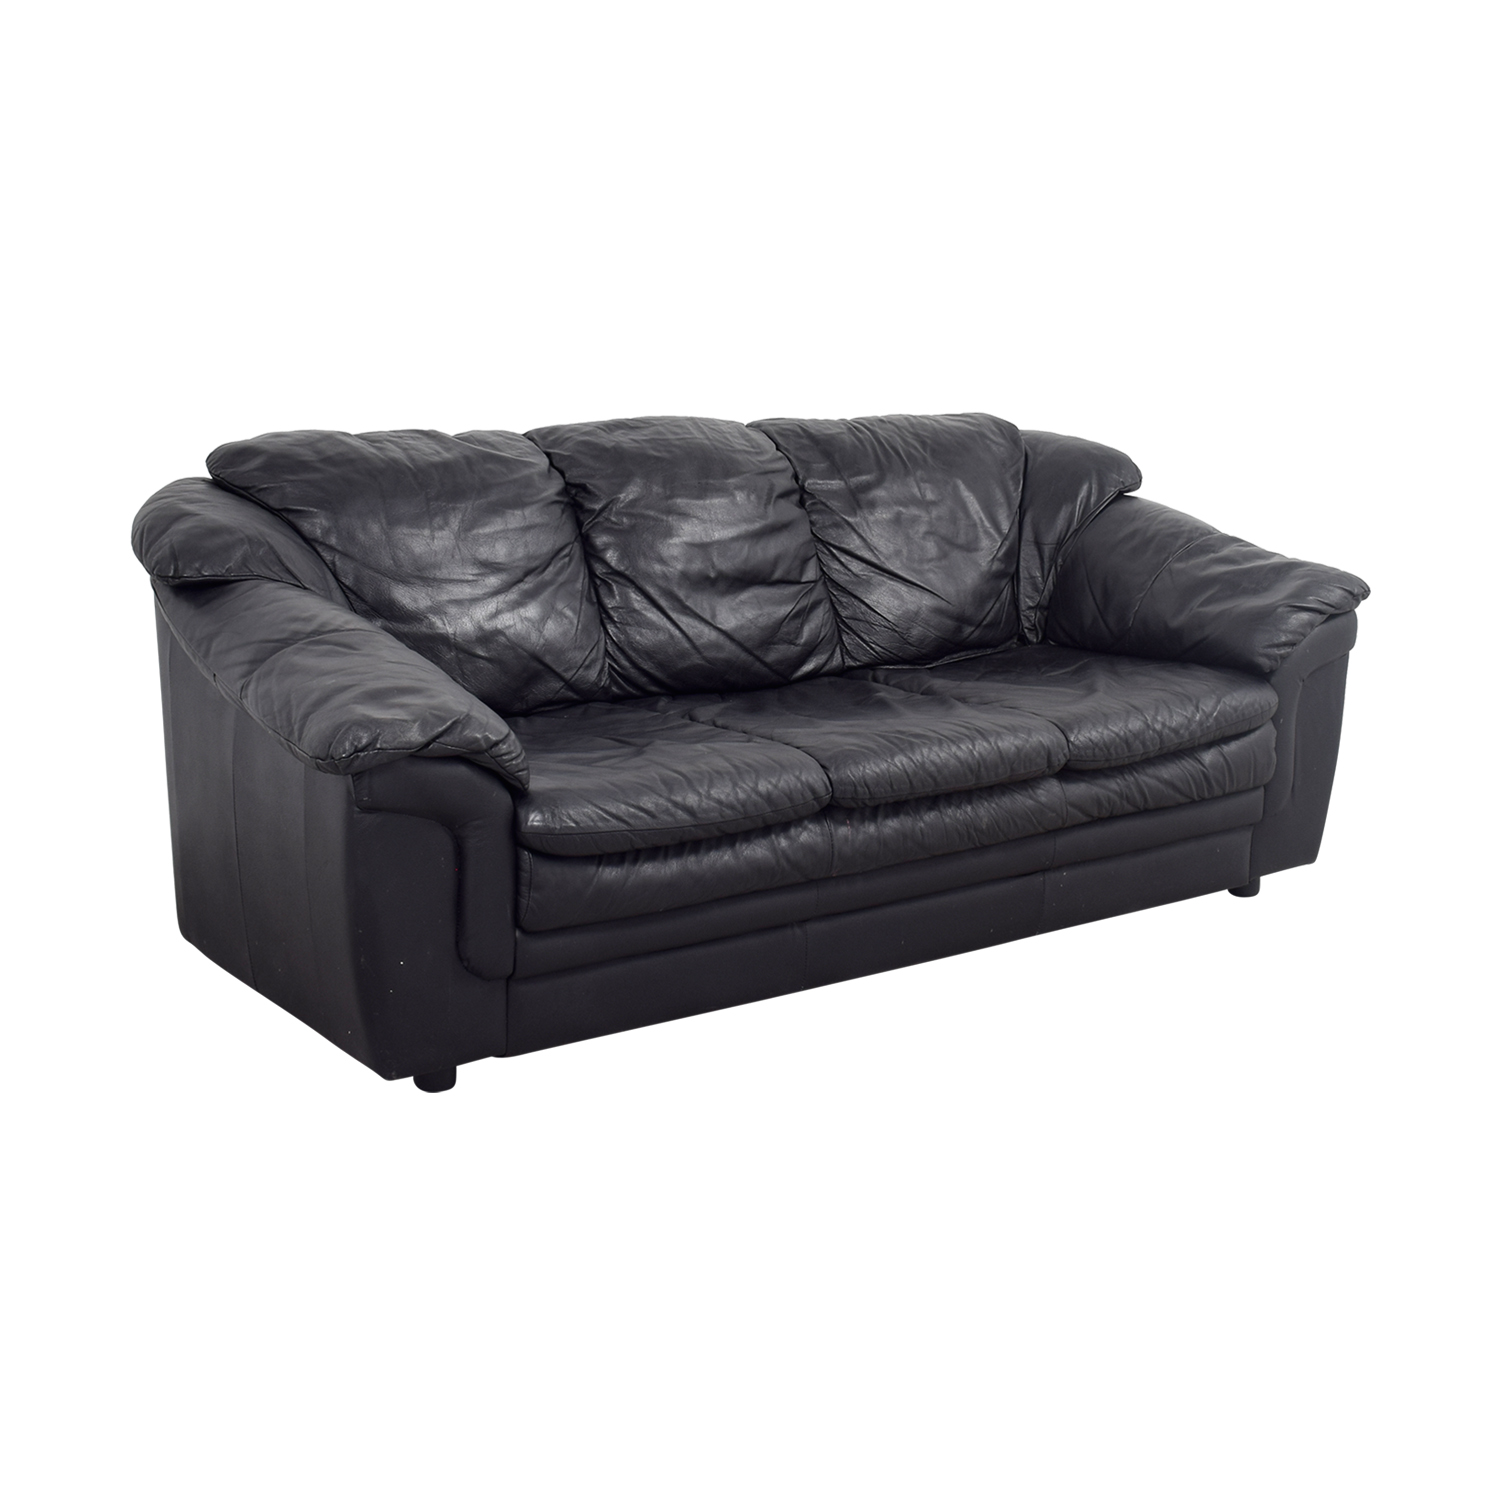 ... Jennifer Leather Jennifer Leather Black Italian Leather Sofa Second  Hand ...